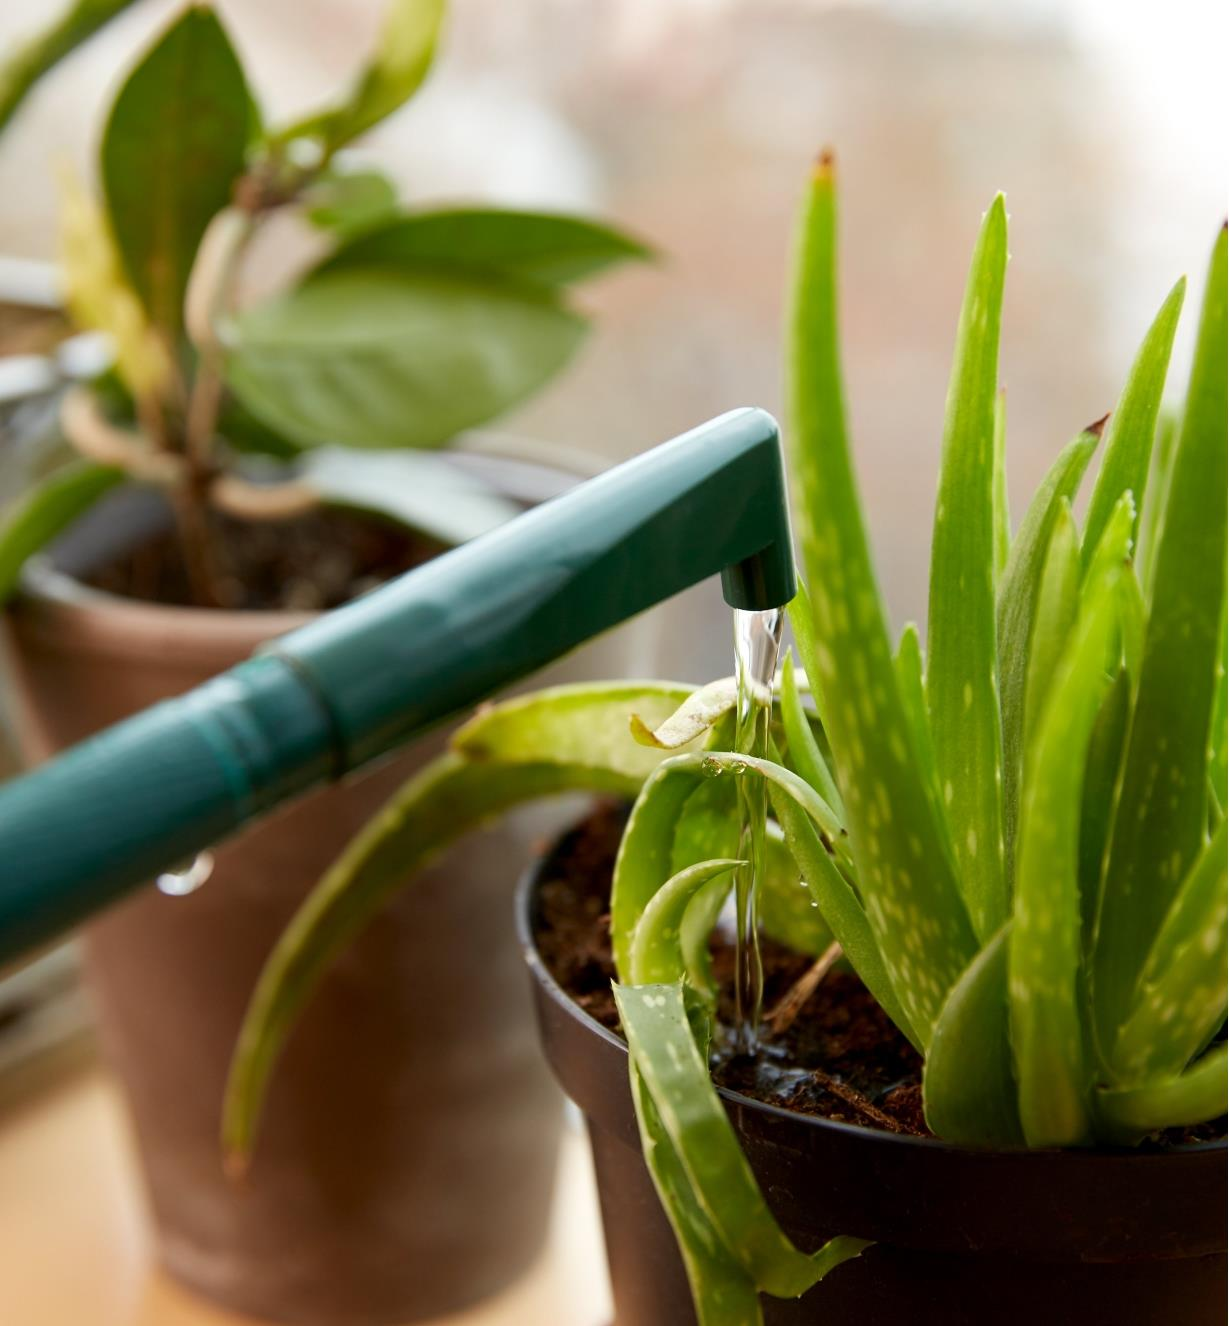 The teapot spout attachment is elbow-shaped to reach into potted plants